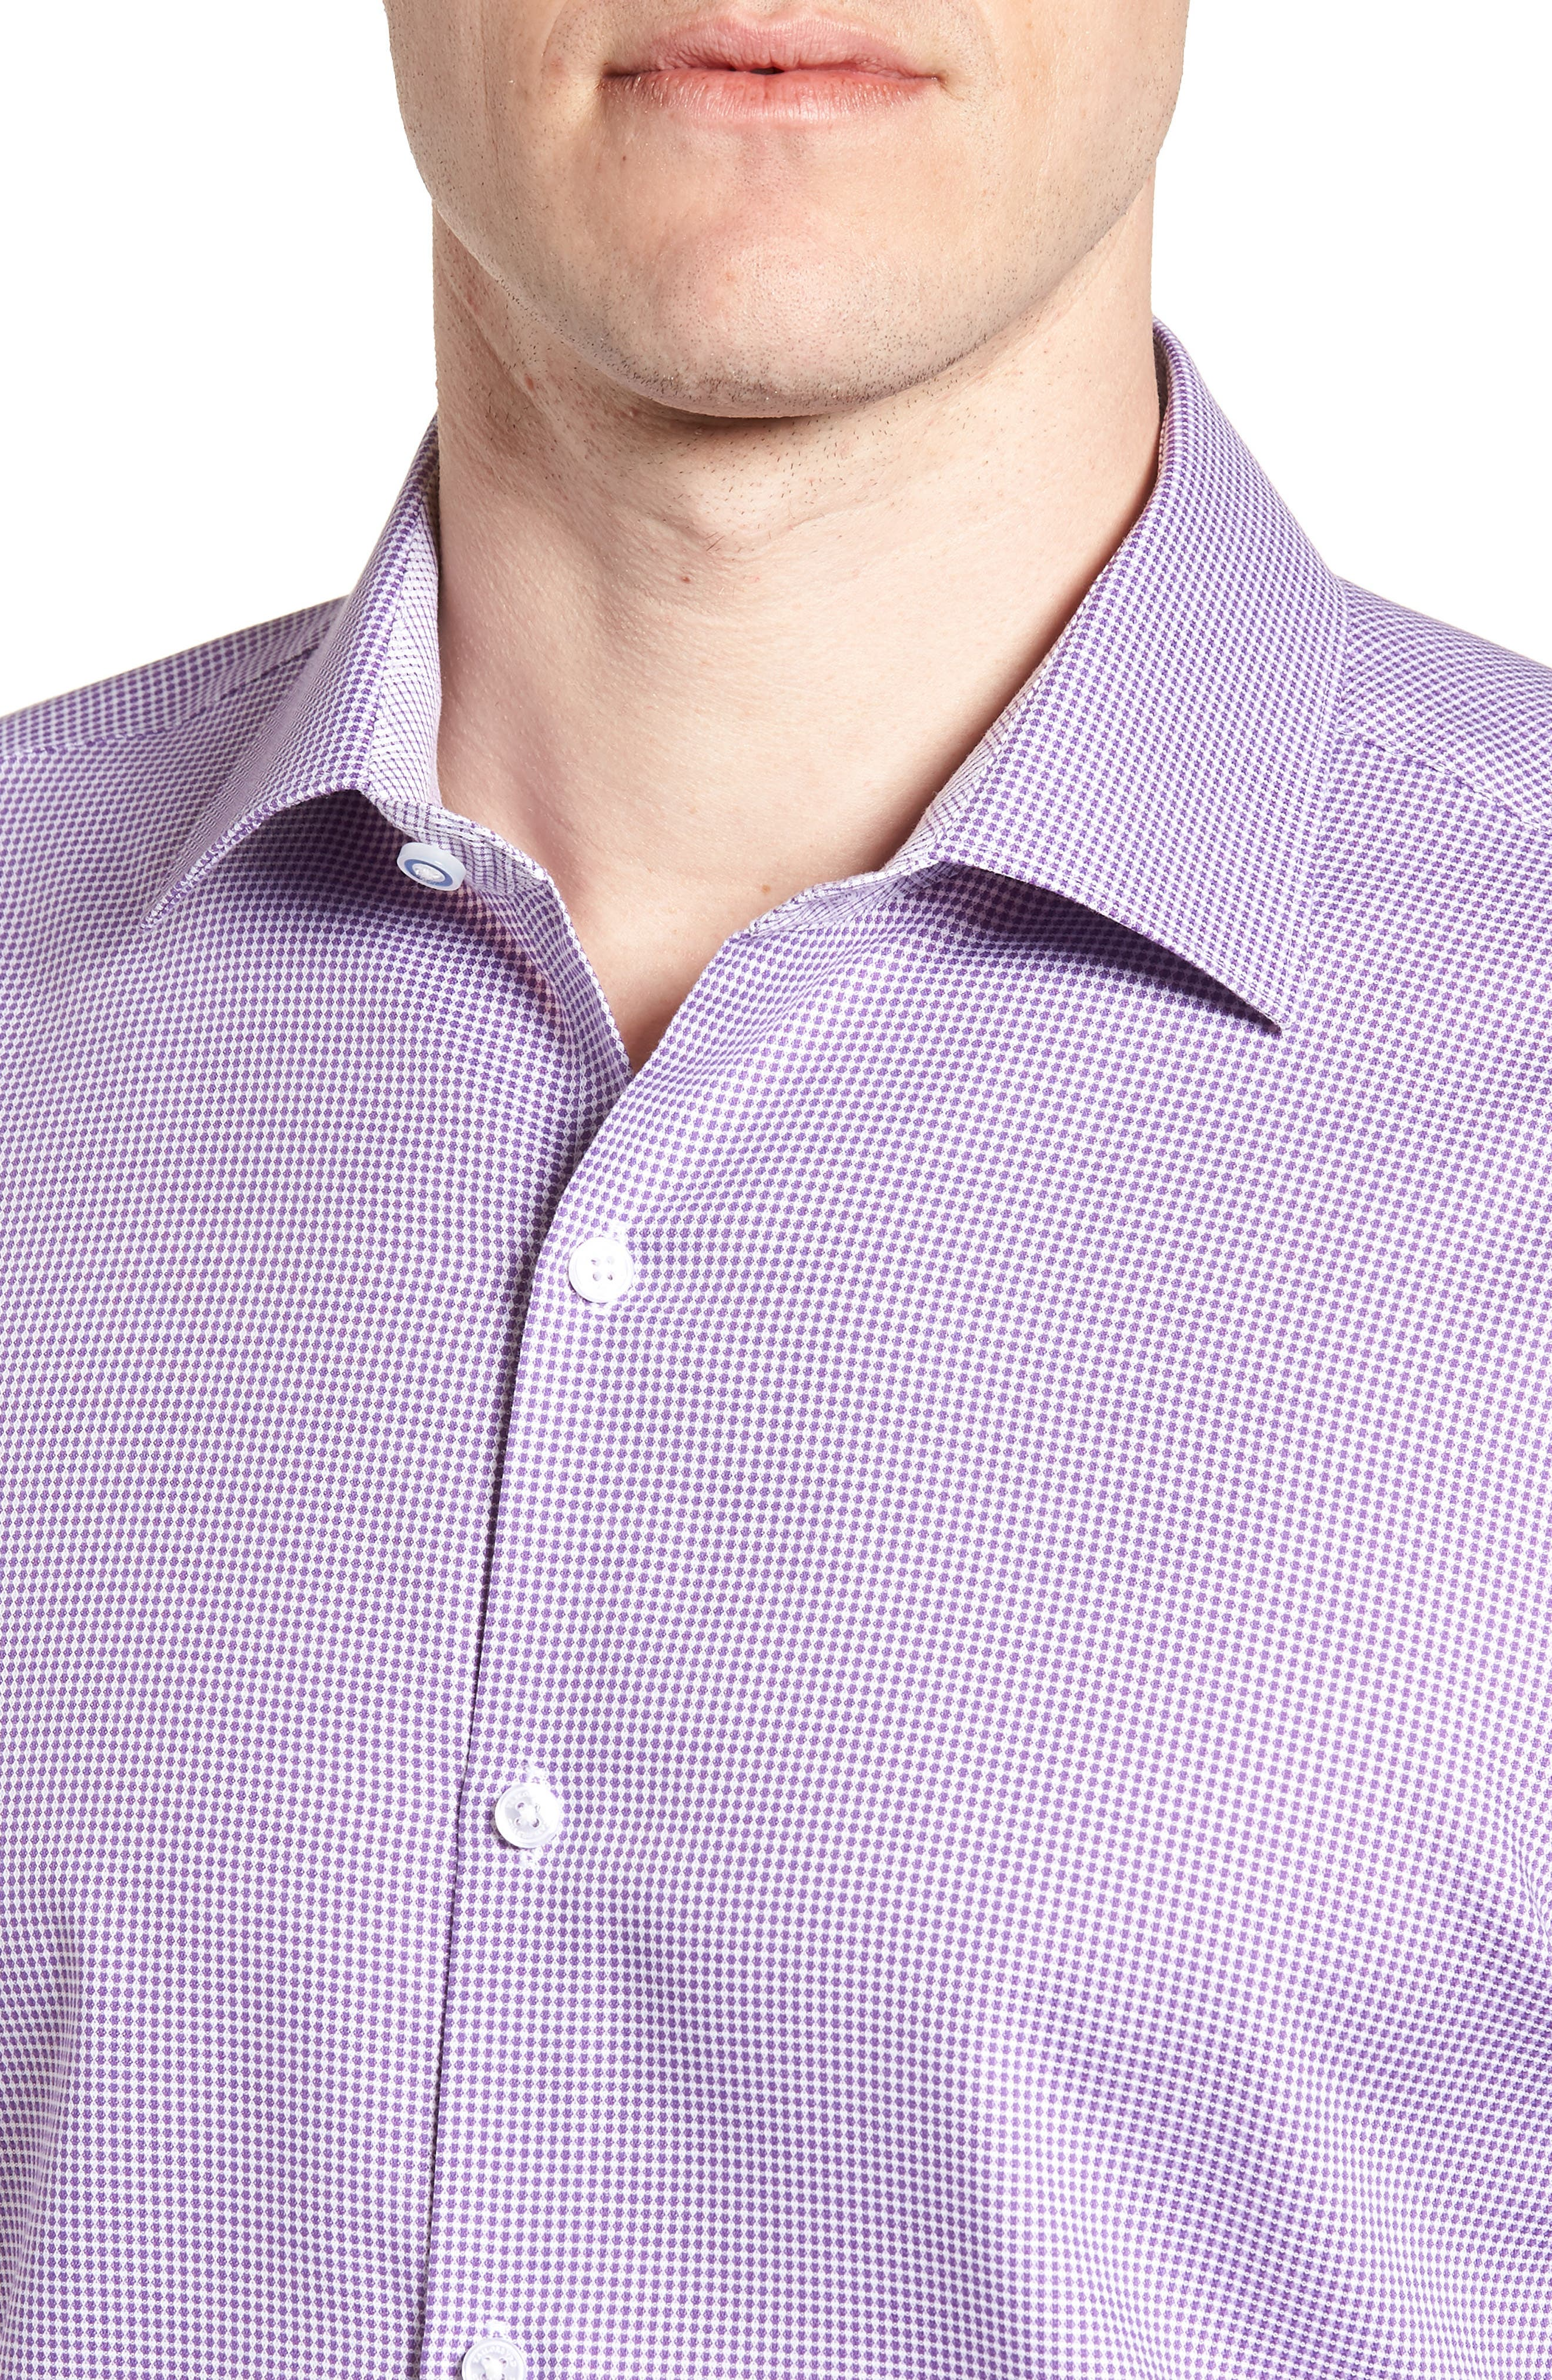 Hayden Trim Fit Check Dress Shirt,                             Alternate thumbnail 2, color,                             PURPLE